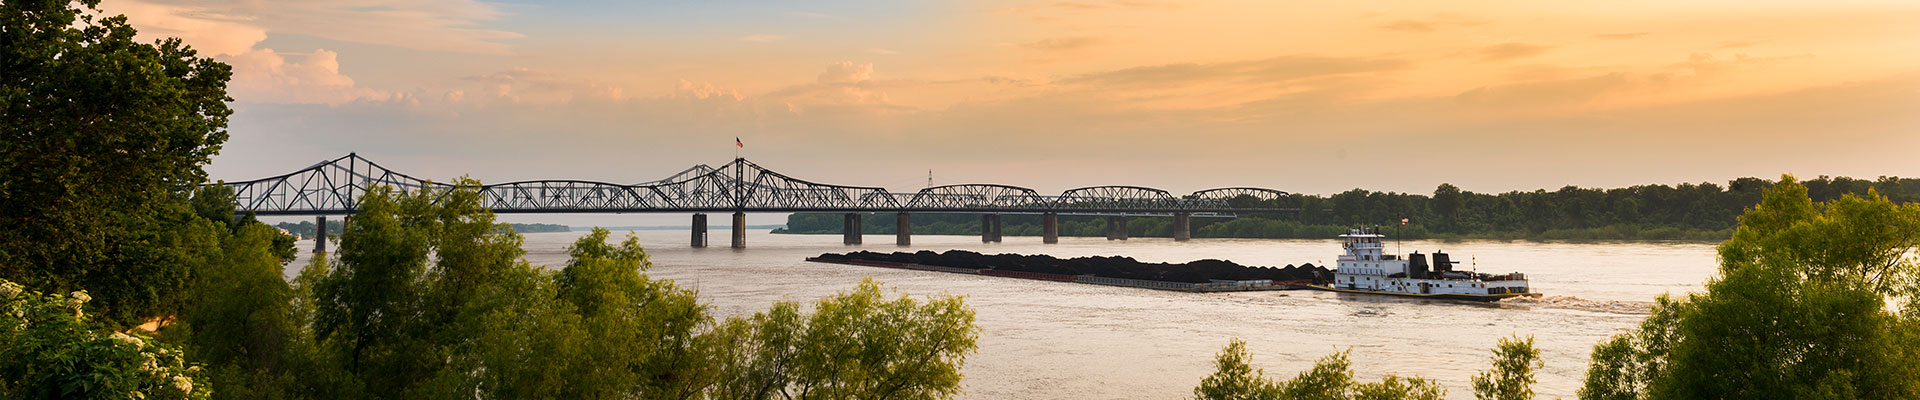 Fantasy RV Tours: 34 Day Mississippi River Run (34UMRP-090619)